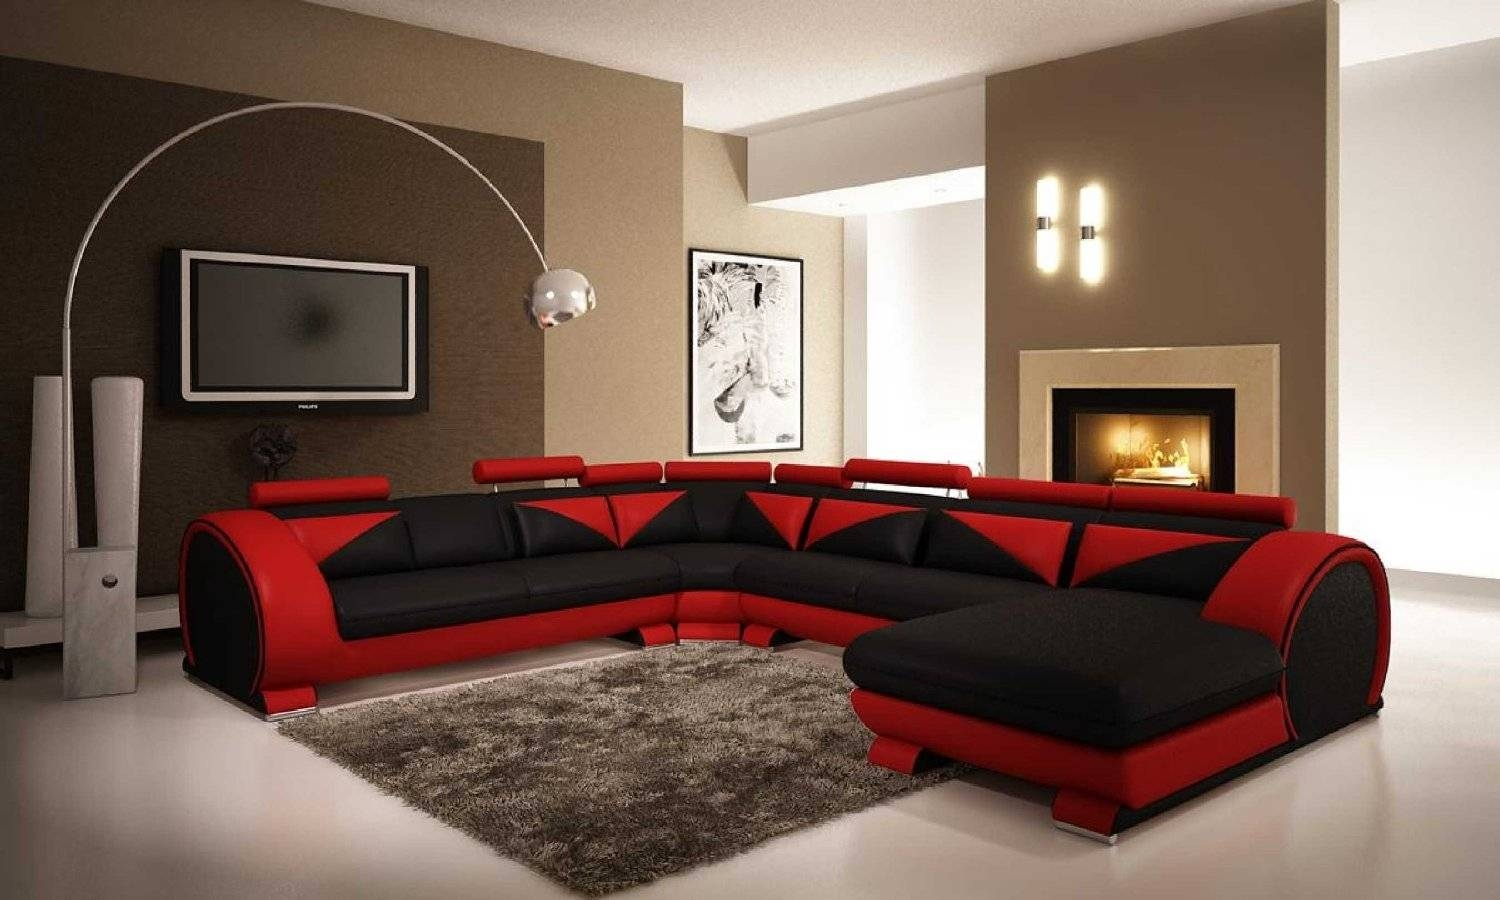 Firestone Red Black 2 Tone Bonded Leather Furniture Sofa Living With Sofa Red And Black (View 11 of 25)